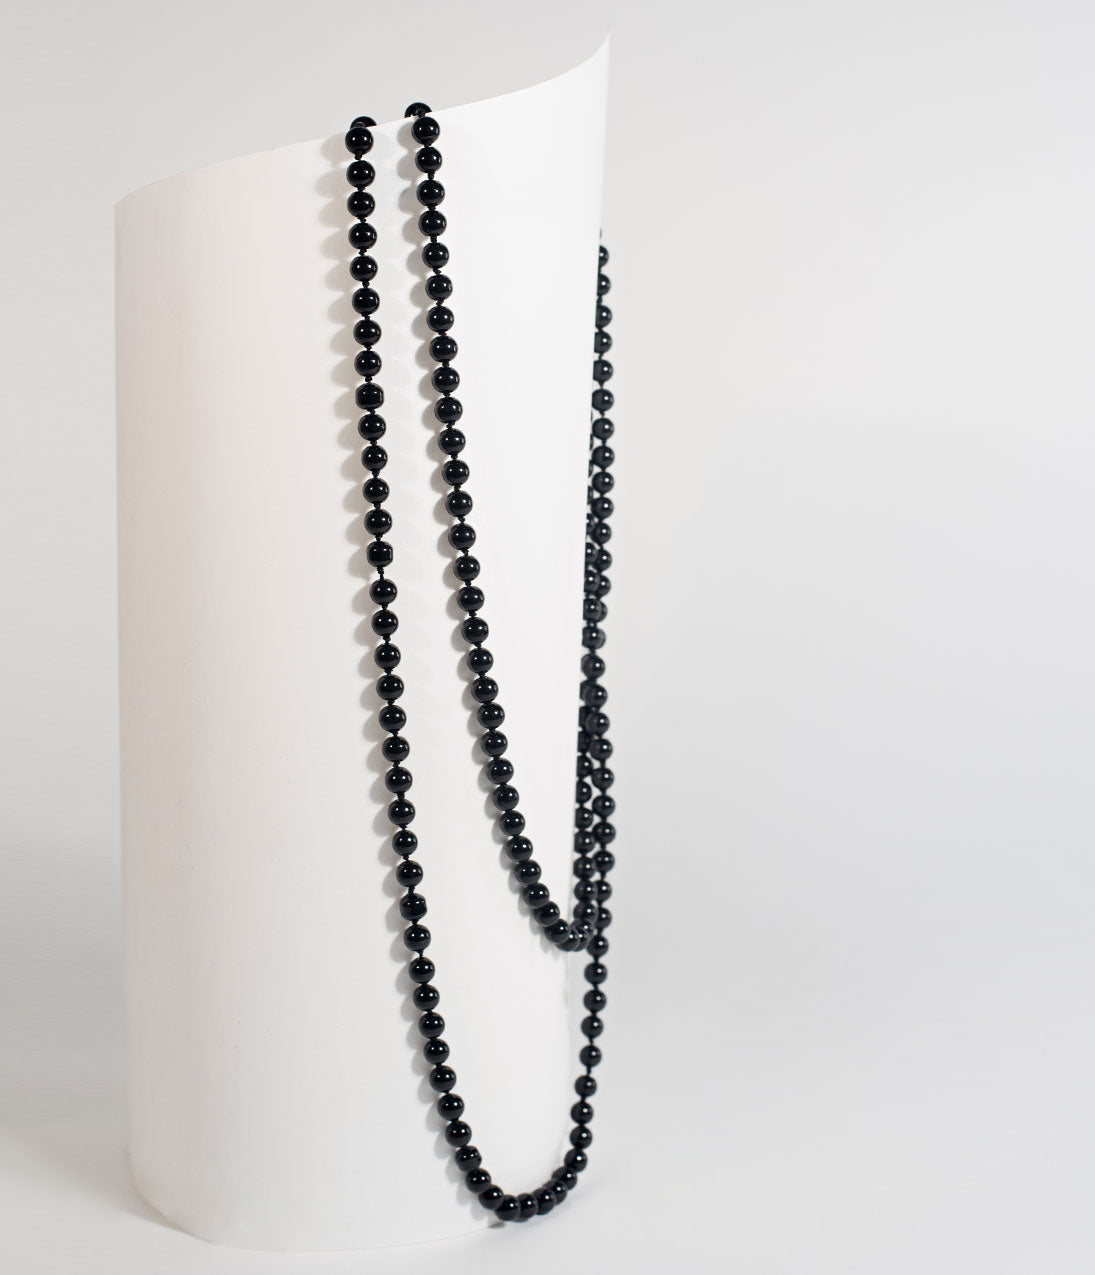 Vintage Style Jewelry, Retro Jewelry Black 60 Long Pearl Necklace $22.00 AT vintagedancer.com